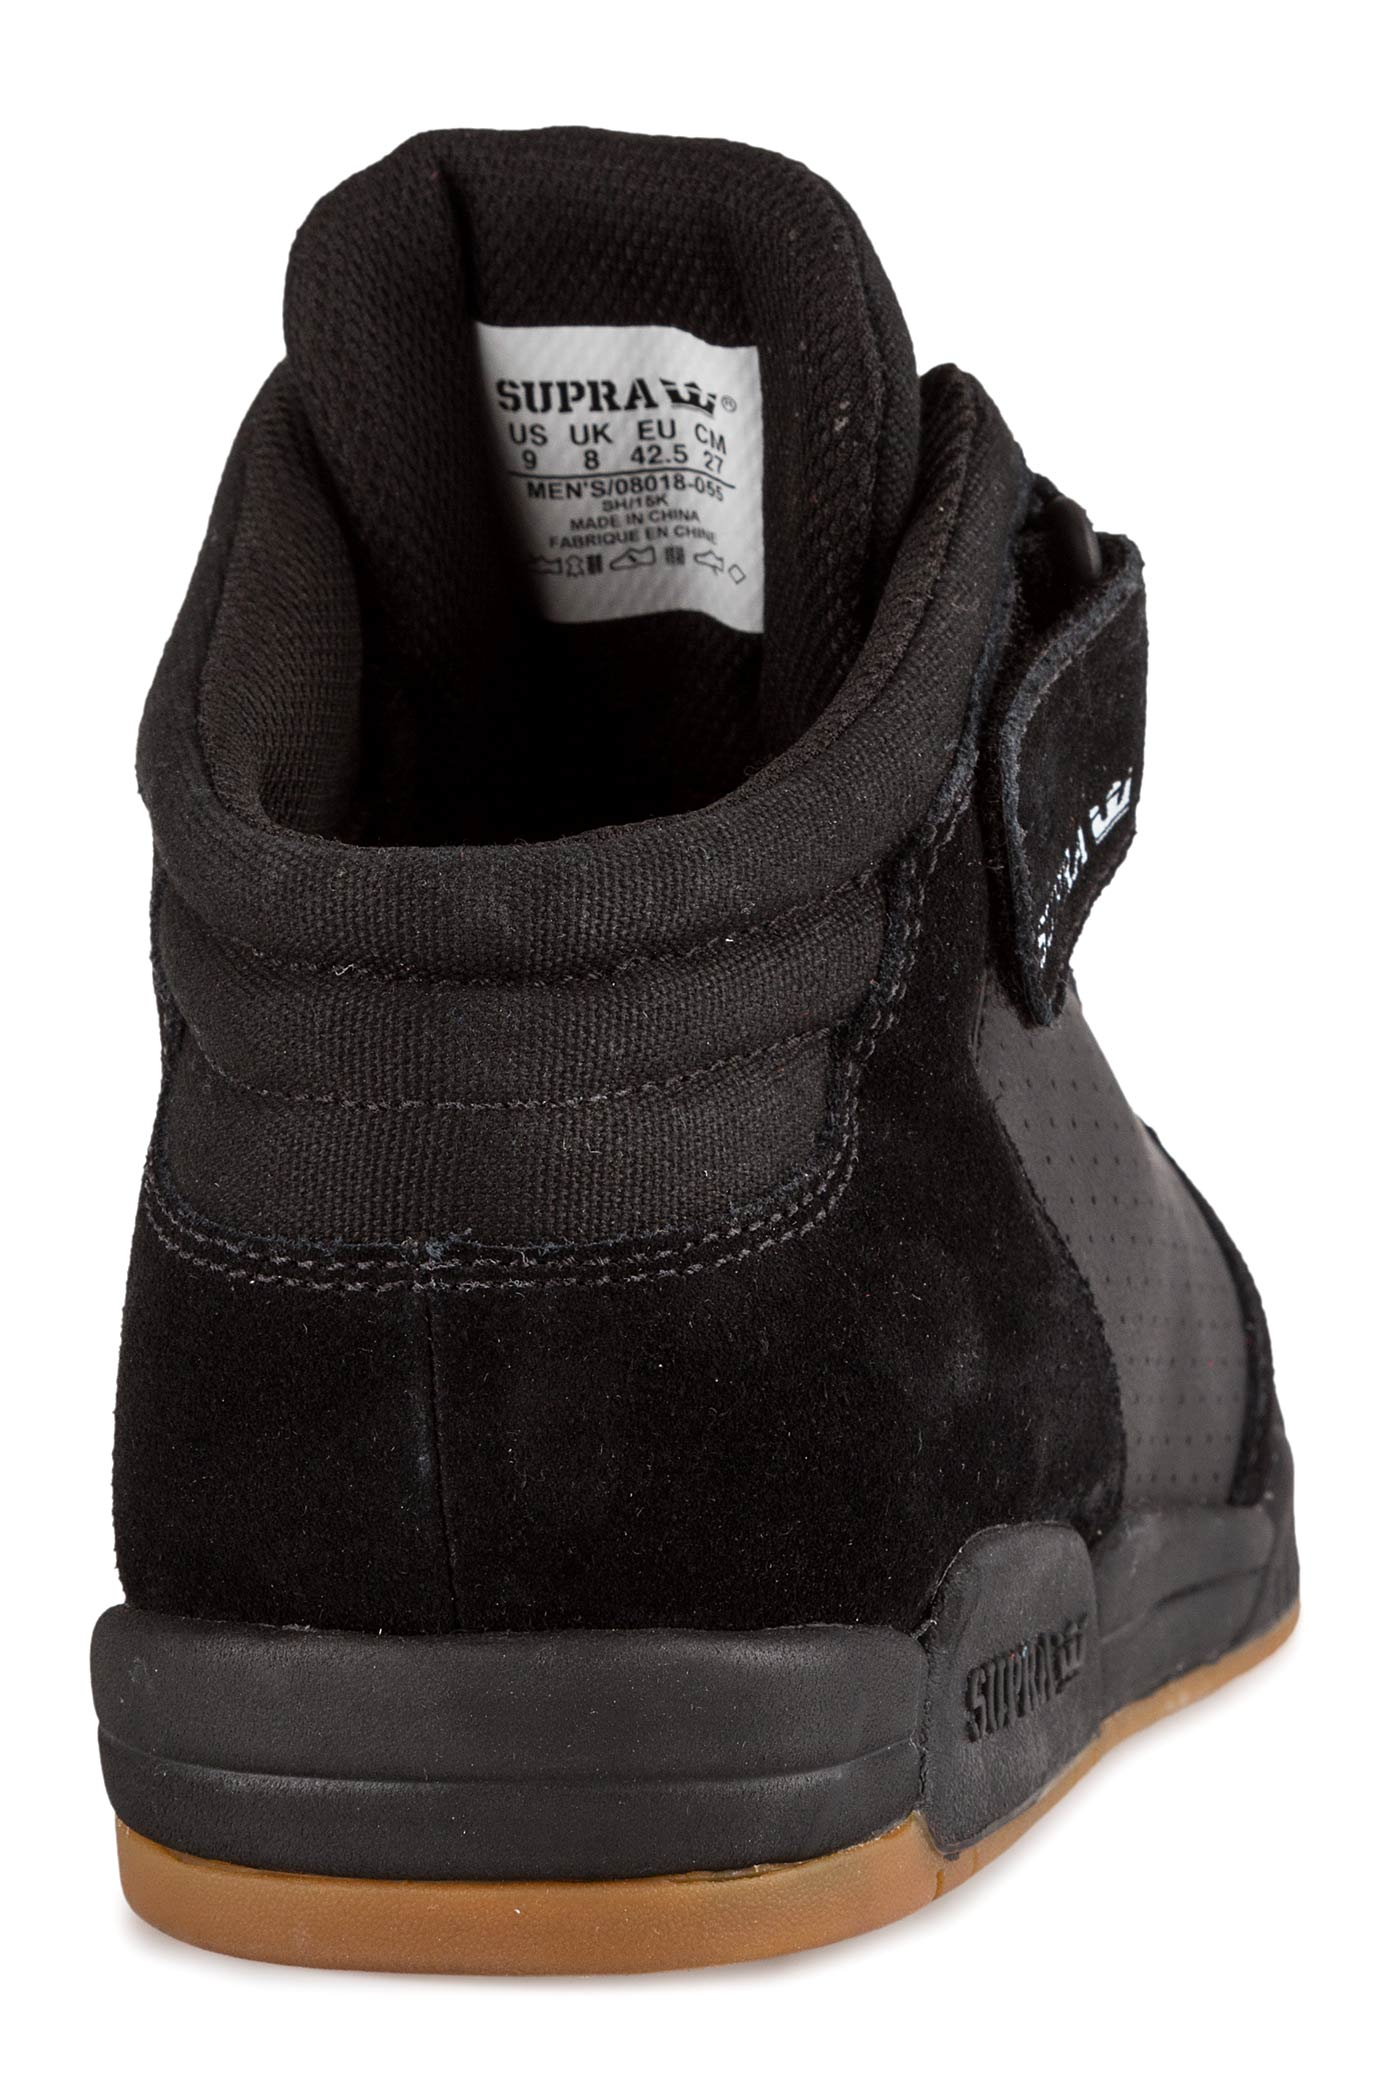 6d6839928f52 Supra Ellington Strap Shoe (black gum) buy at skatedeluxe